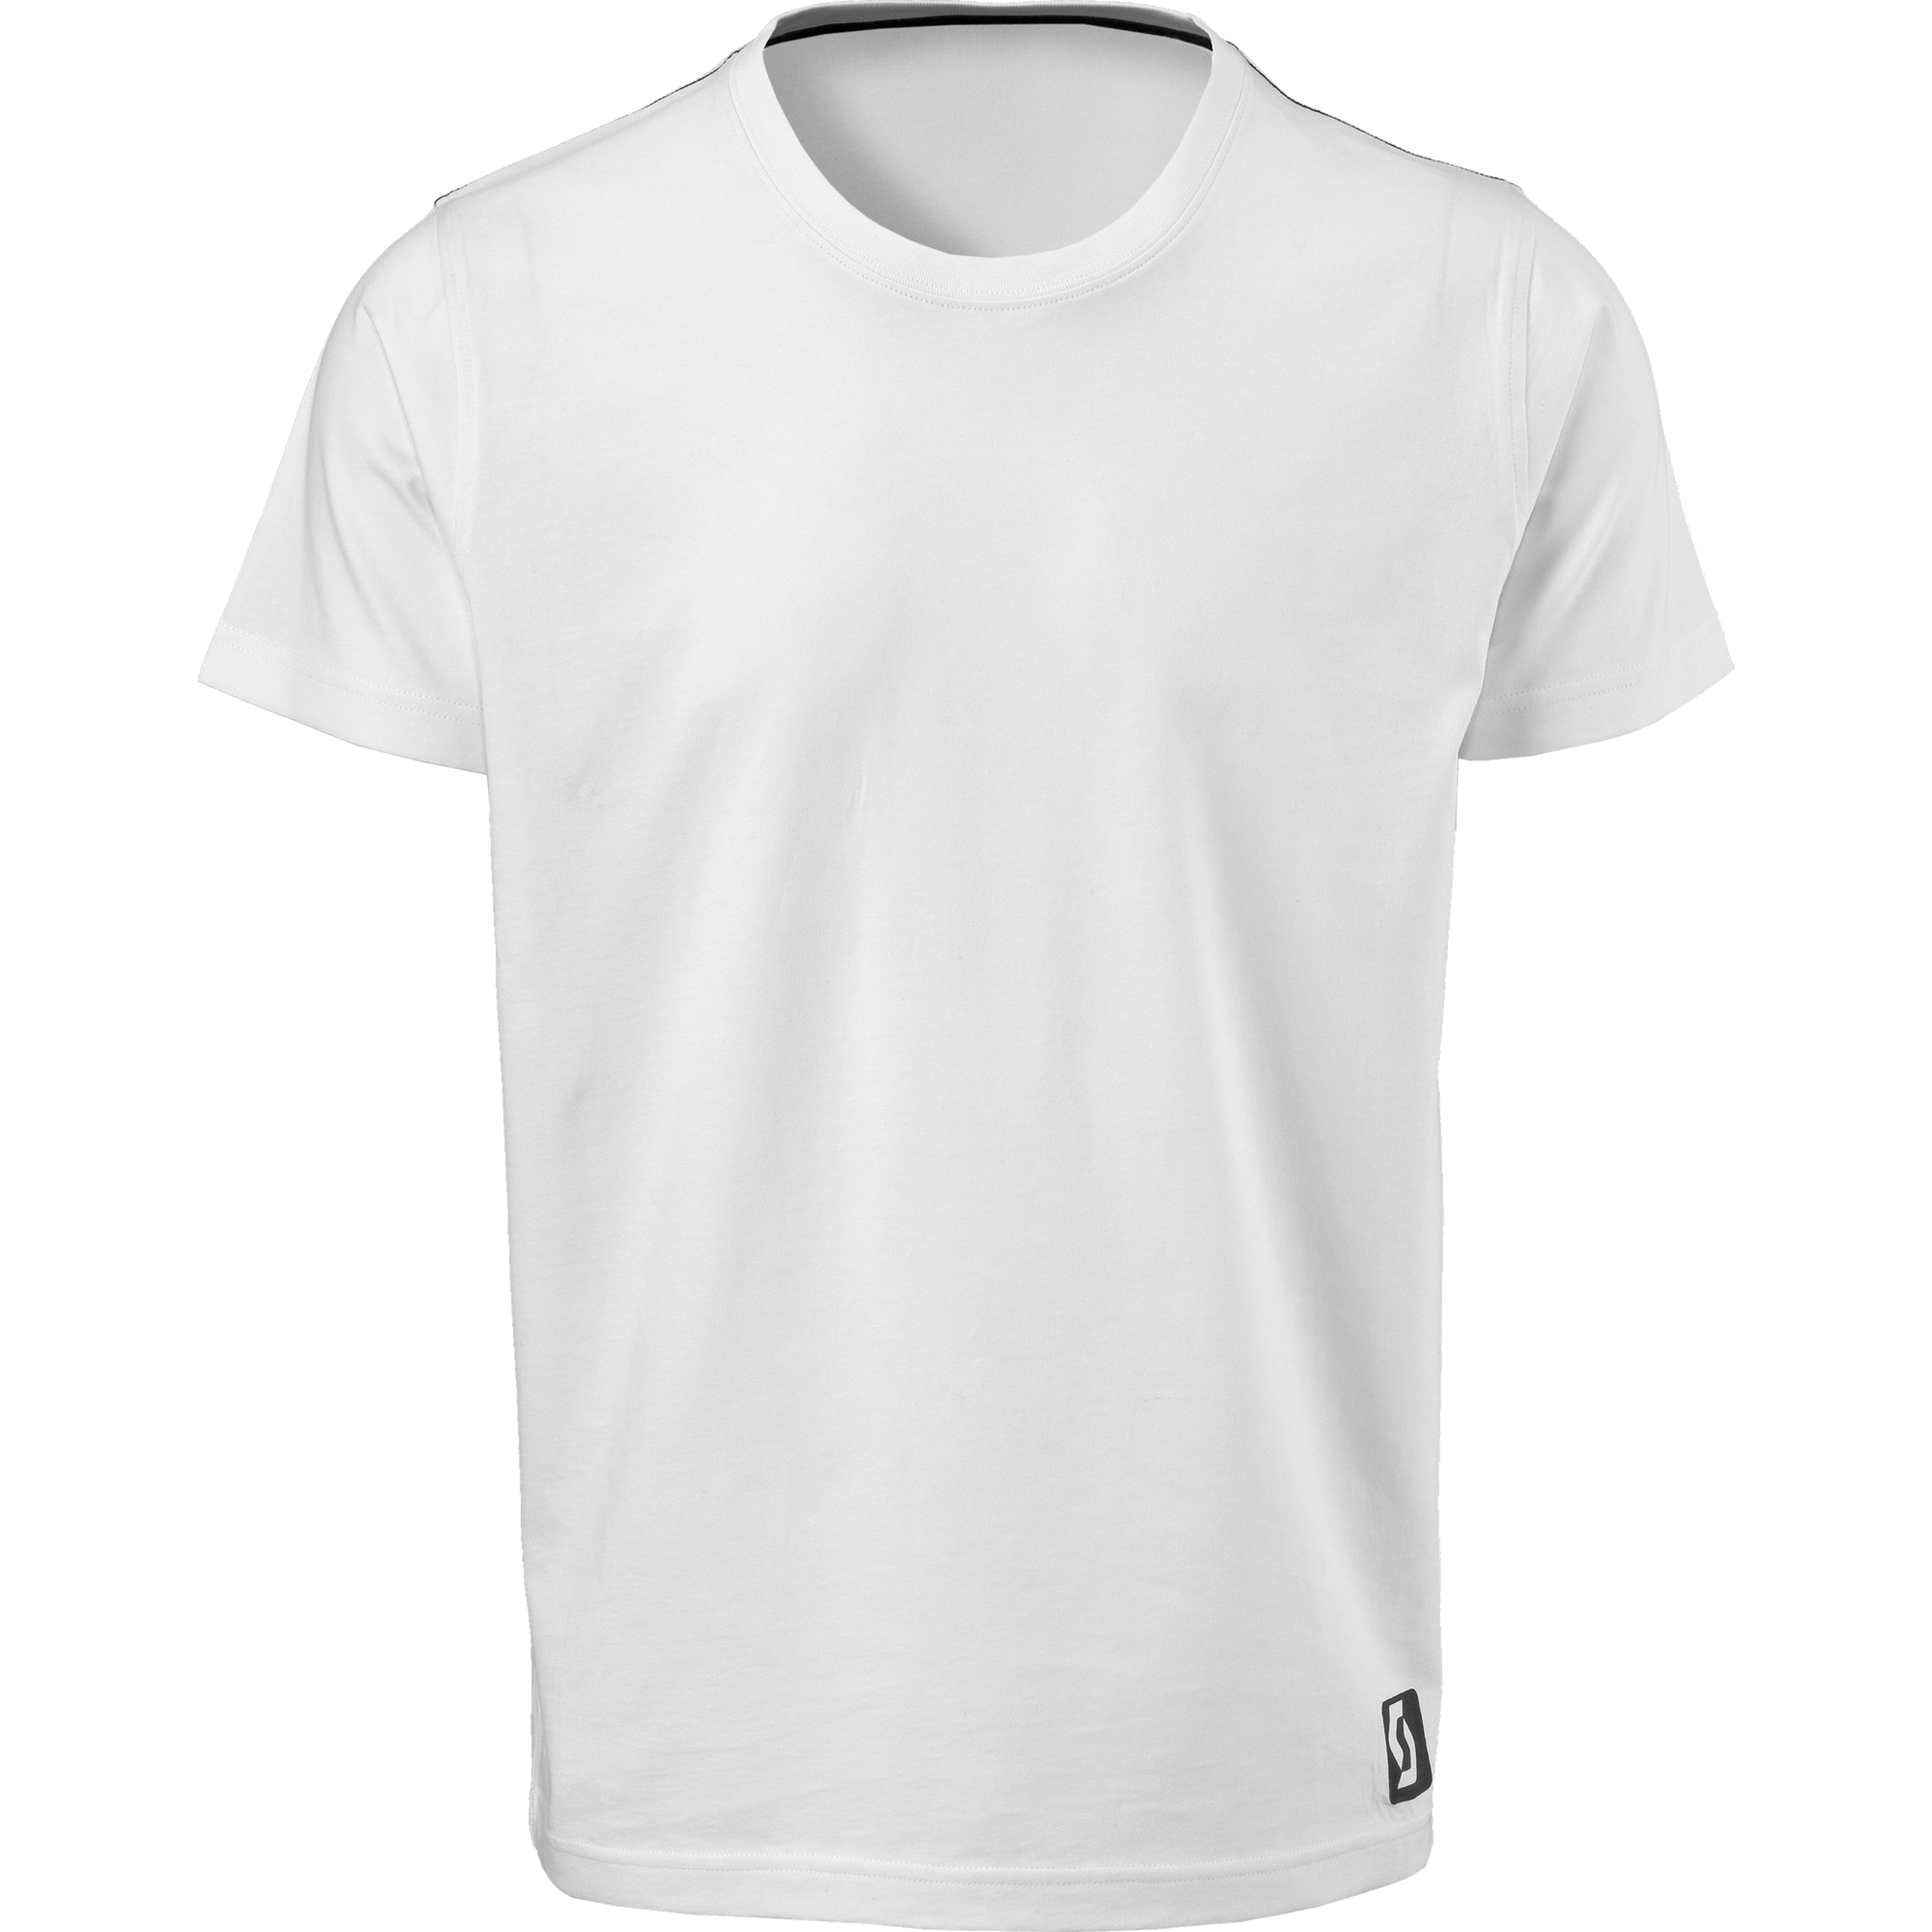 T shirts images free. White tshirt png svg library